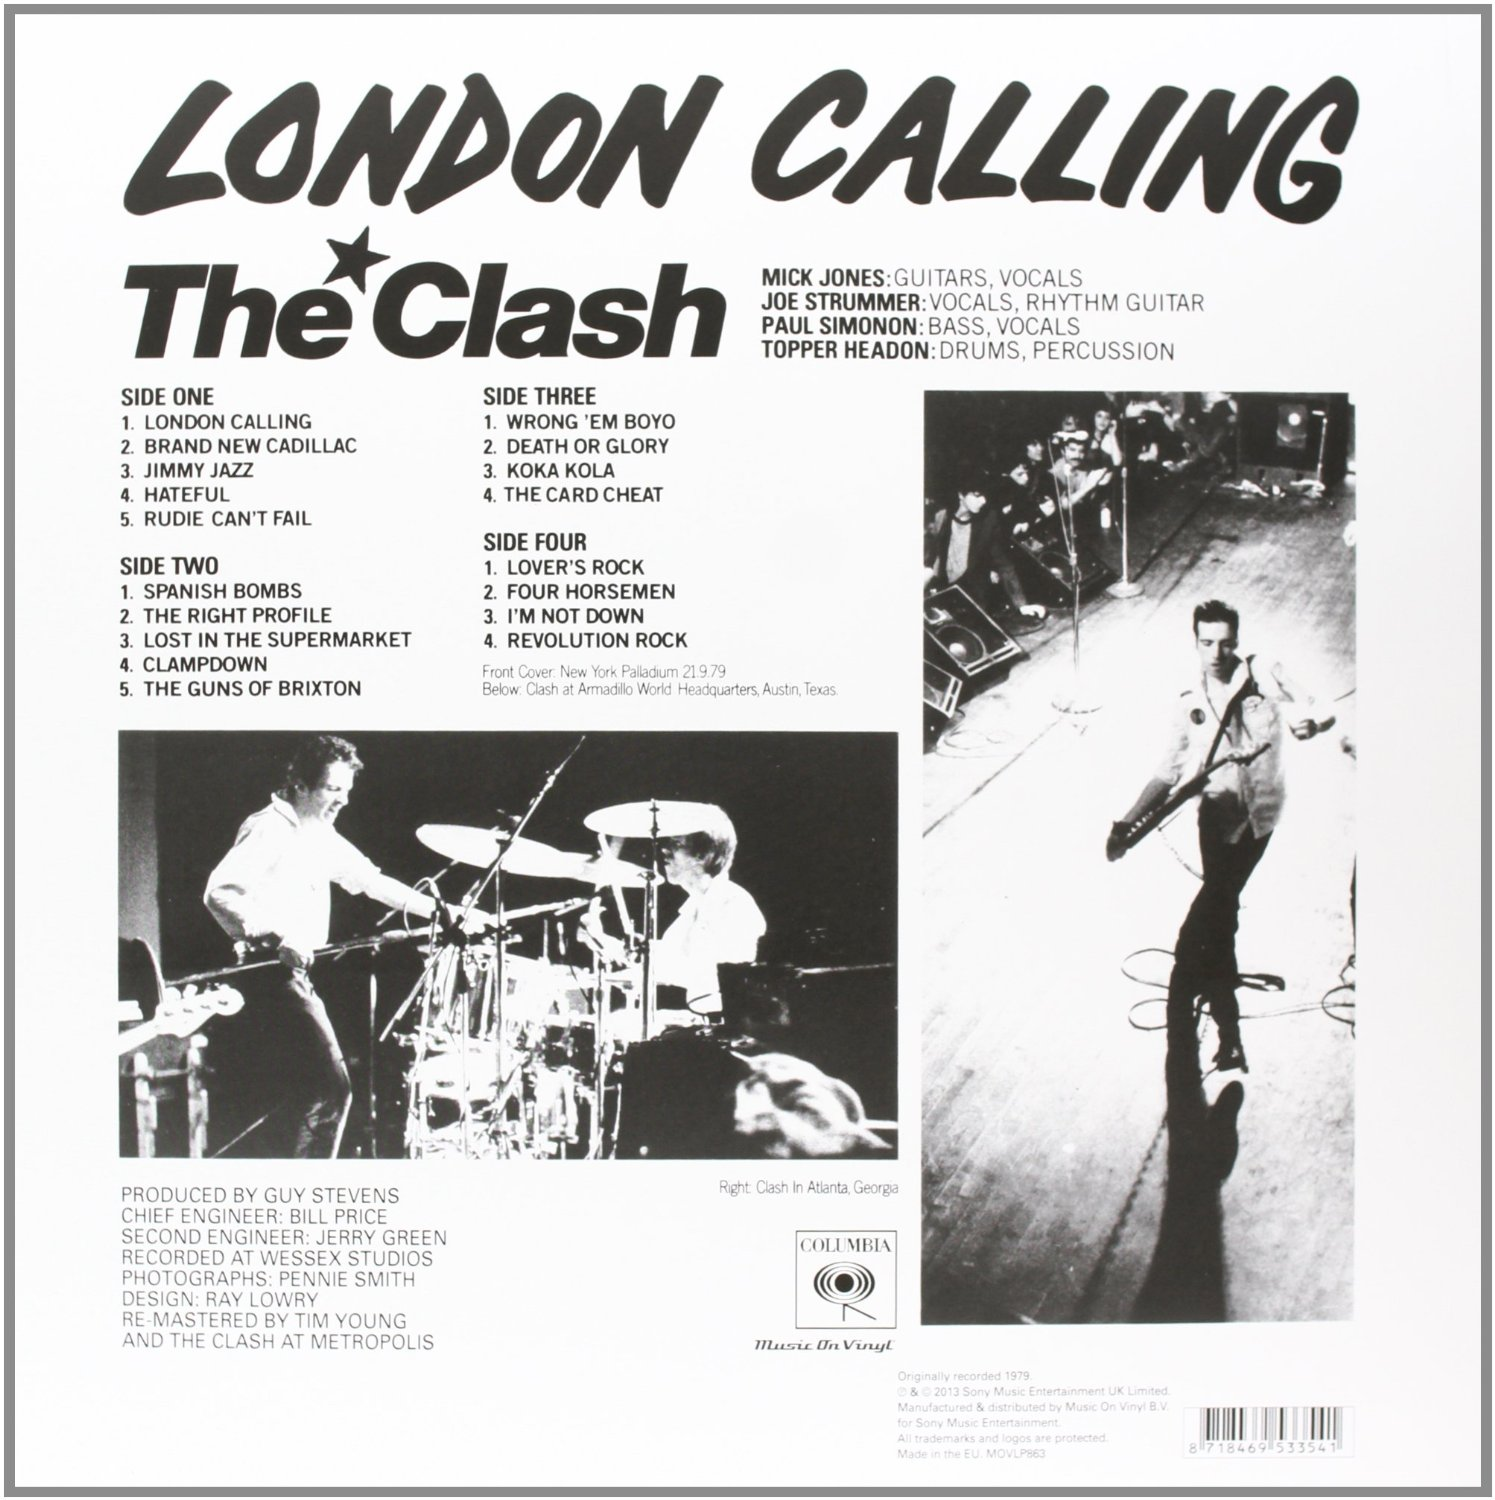 THE CLASH - London calling_Retro